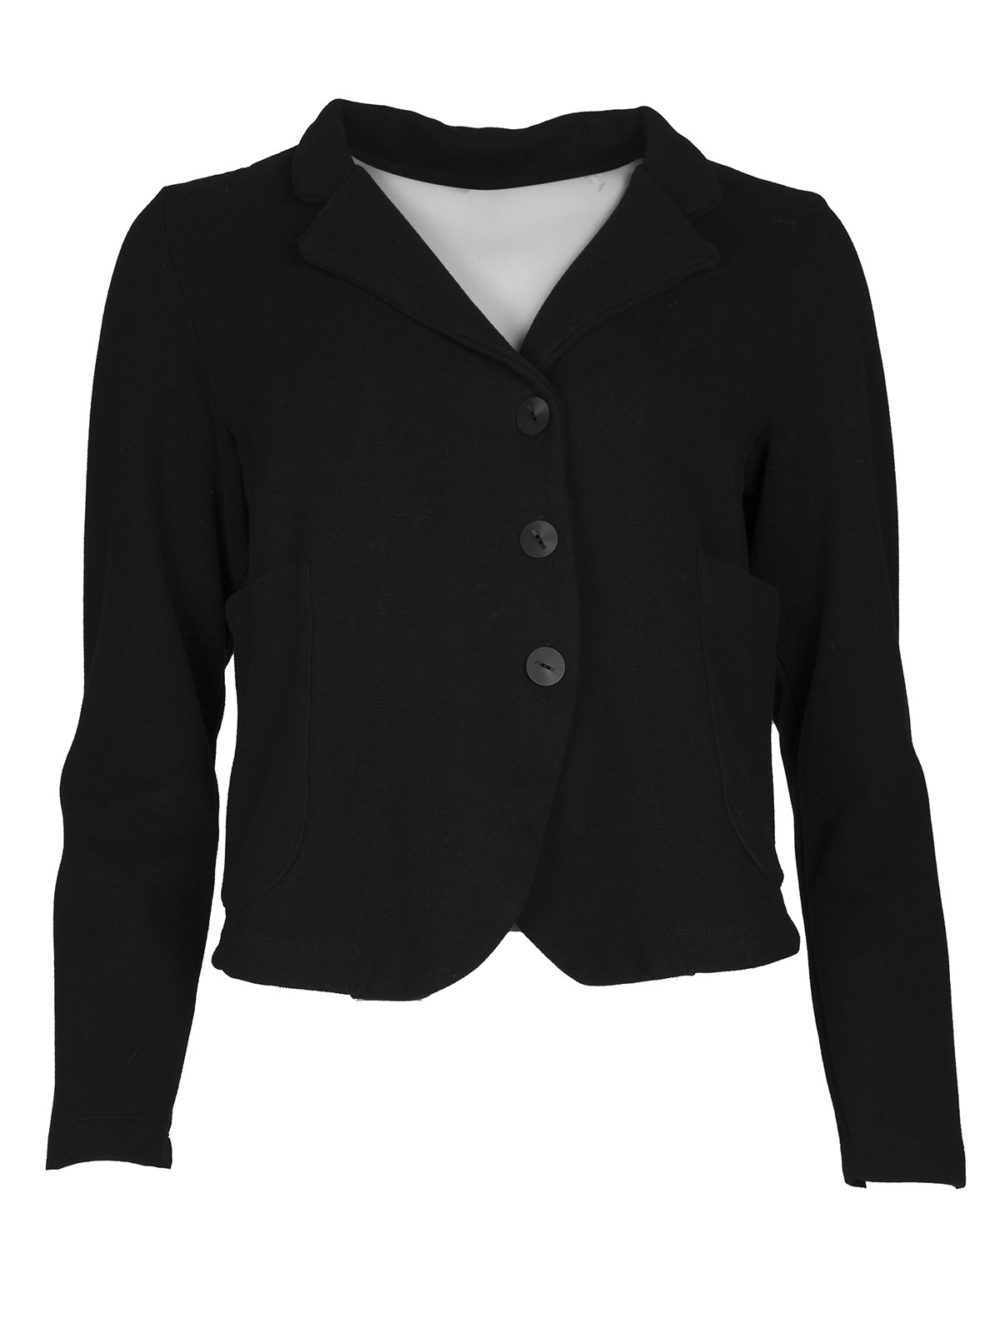 Jacket 7844 Grizas Katie Kerr Women's Clothing